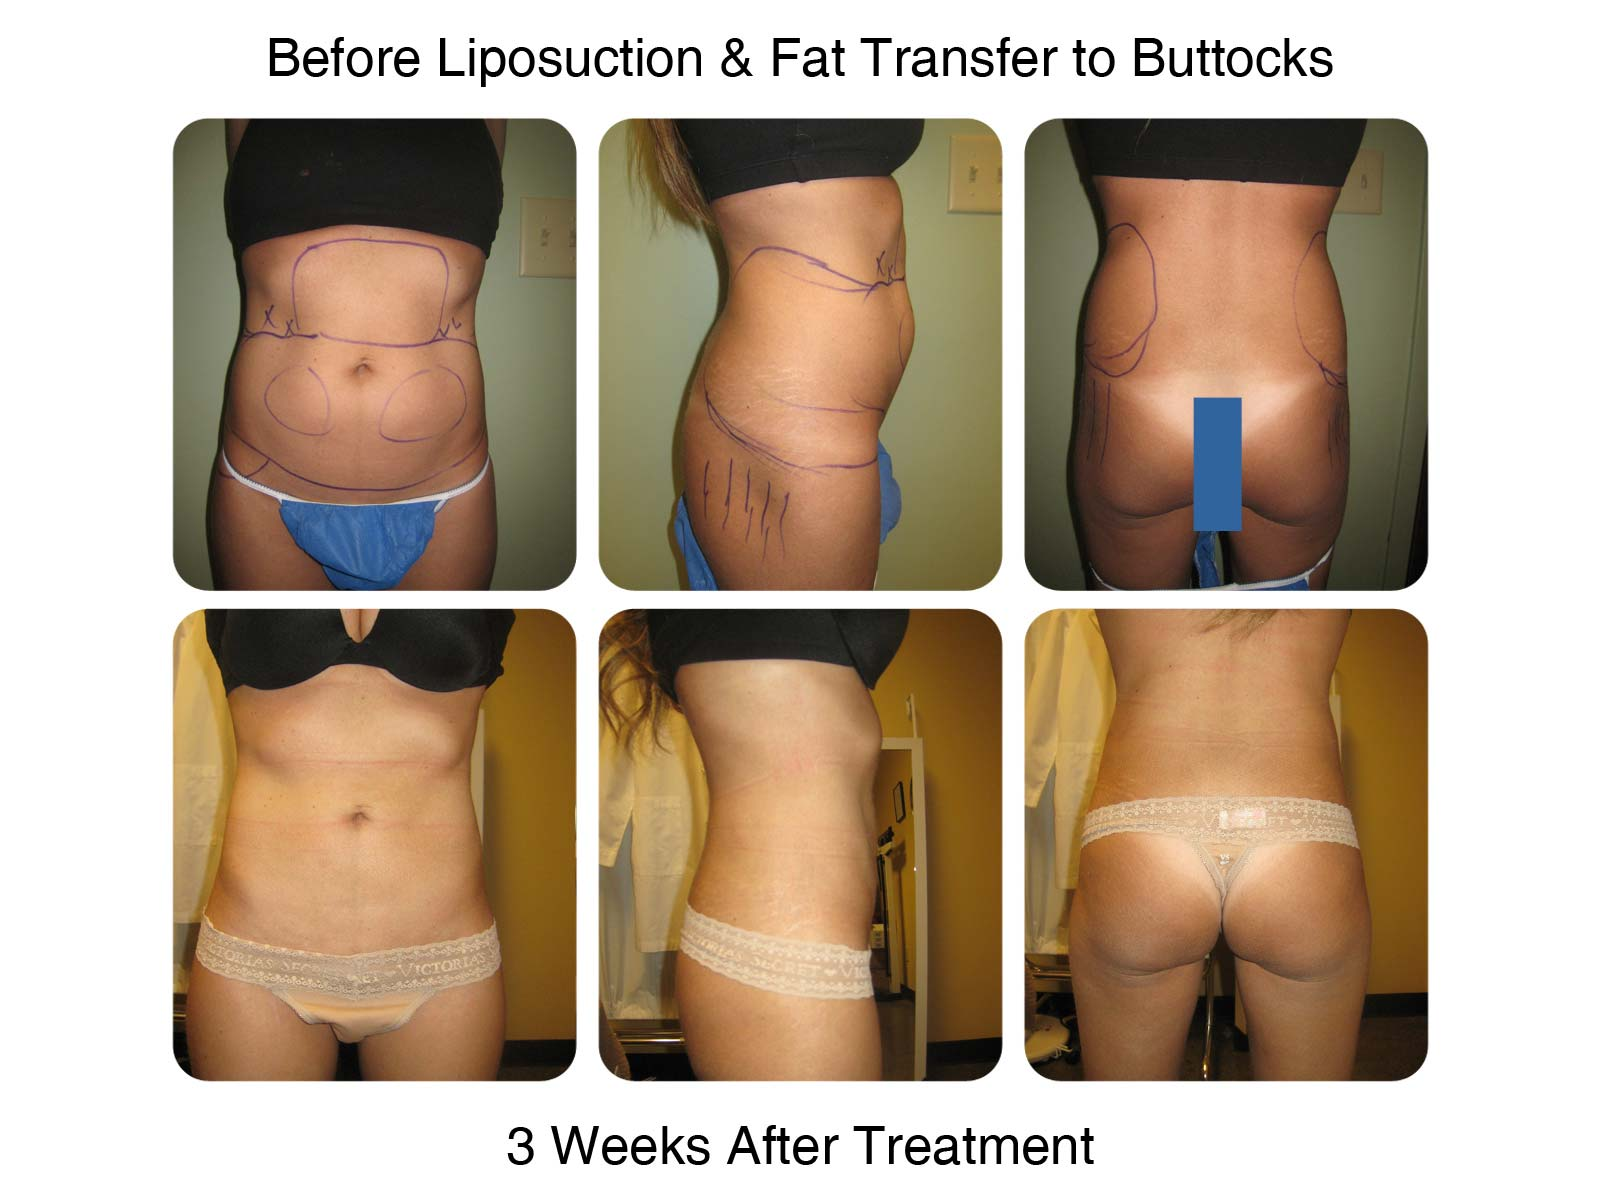 Fat Transfer to Butt Procedure - Before and After